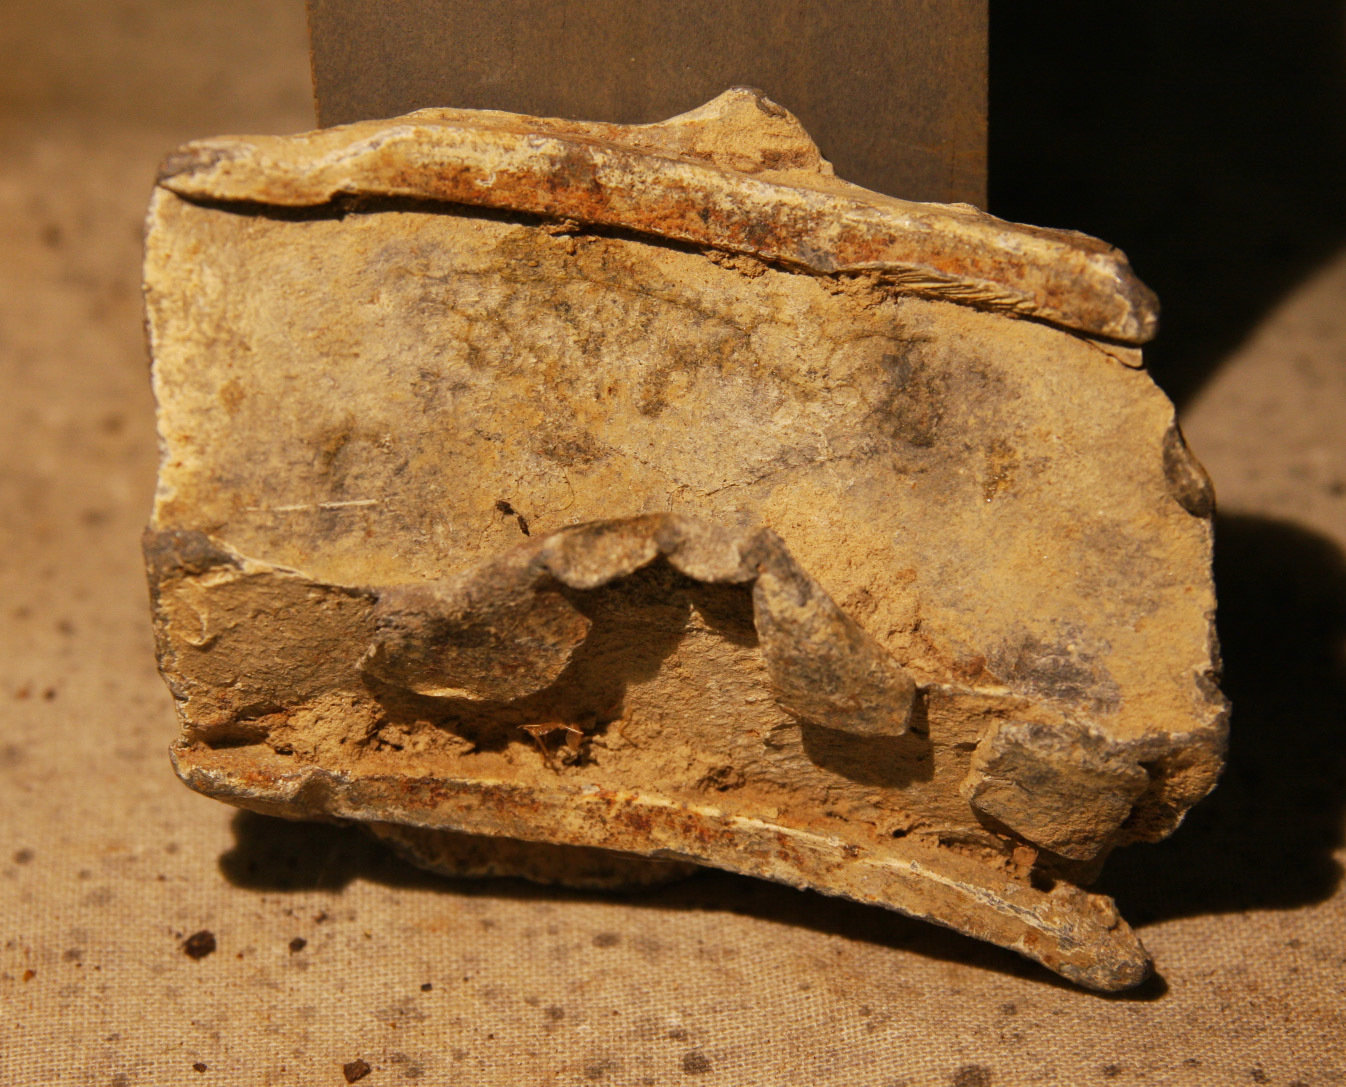 JUST ADDED ON 5/23 - THE BATTLE OF GLENDALE / WHITE OAK SWAMP - Fragment of the Sabot from a Hotchkiss Artillery Shell